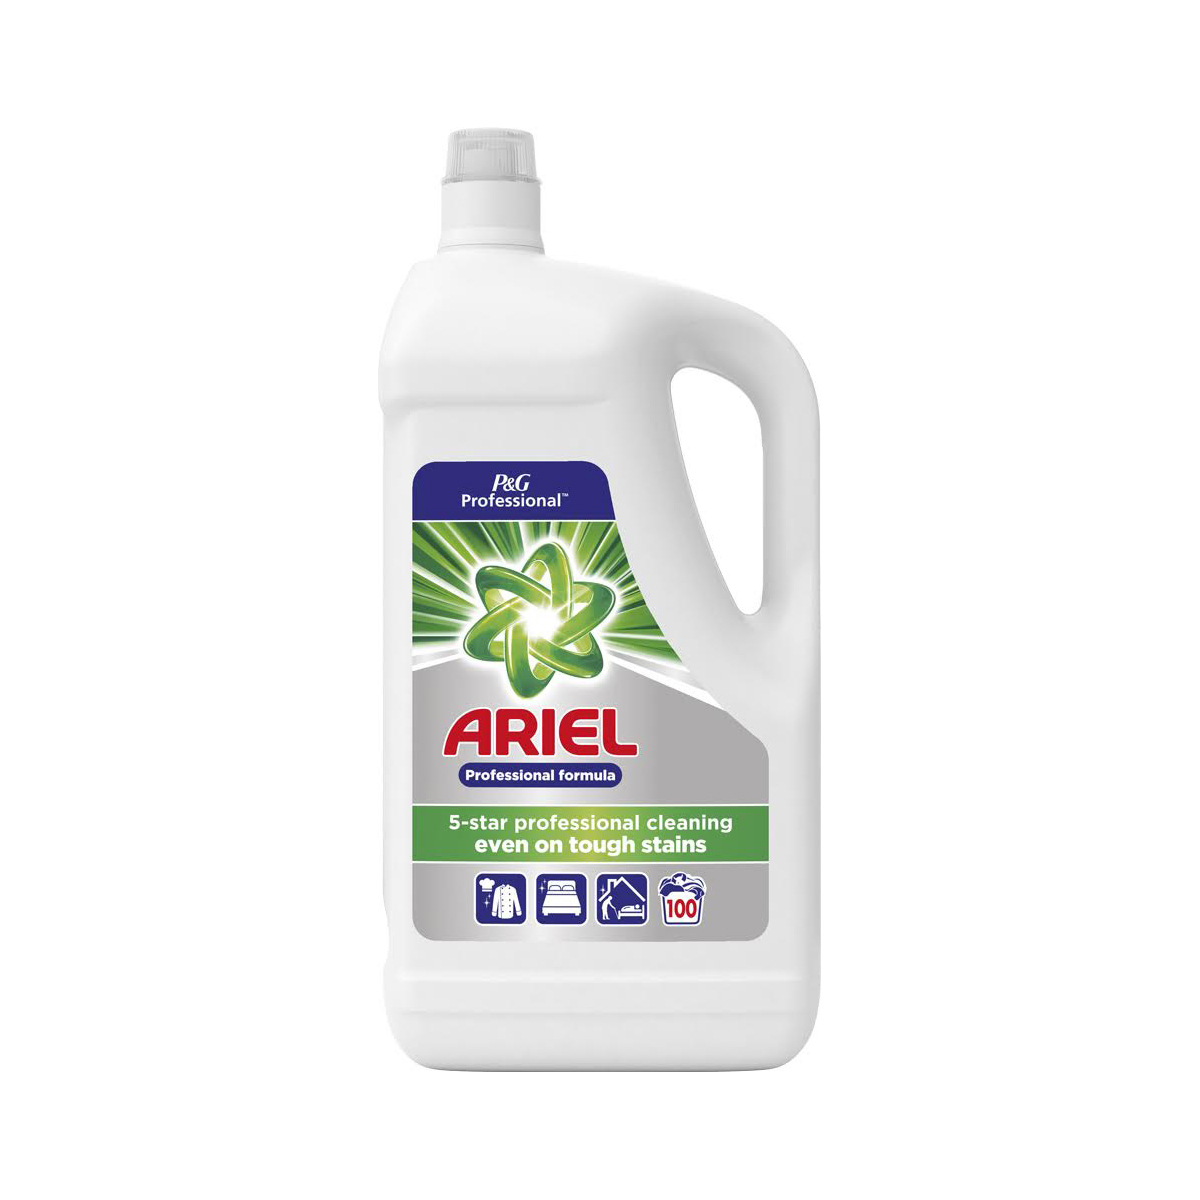 Disinfectant Wipes Ariel Professional Liquid Wash 100 Washes 5 Litre Ref 73402